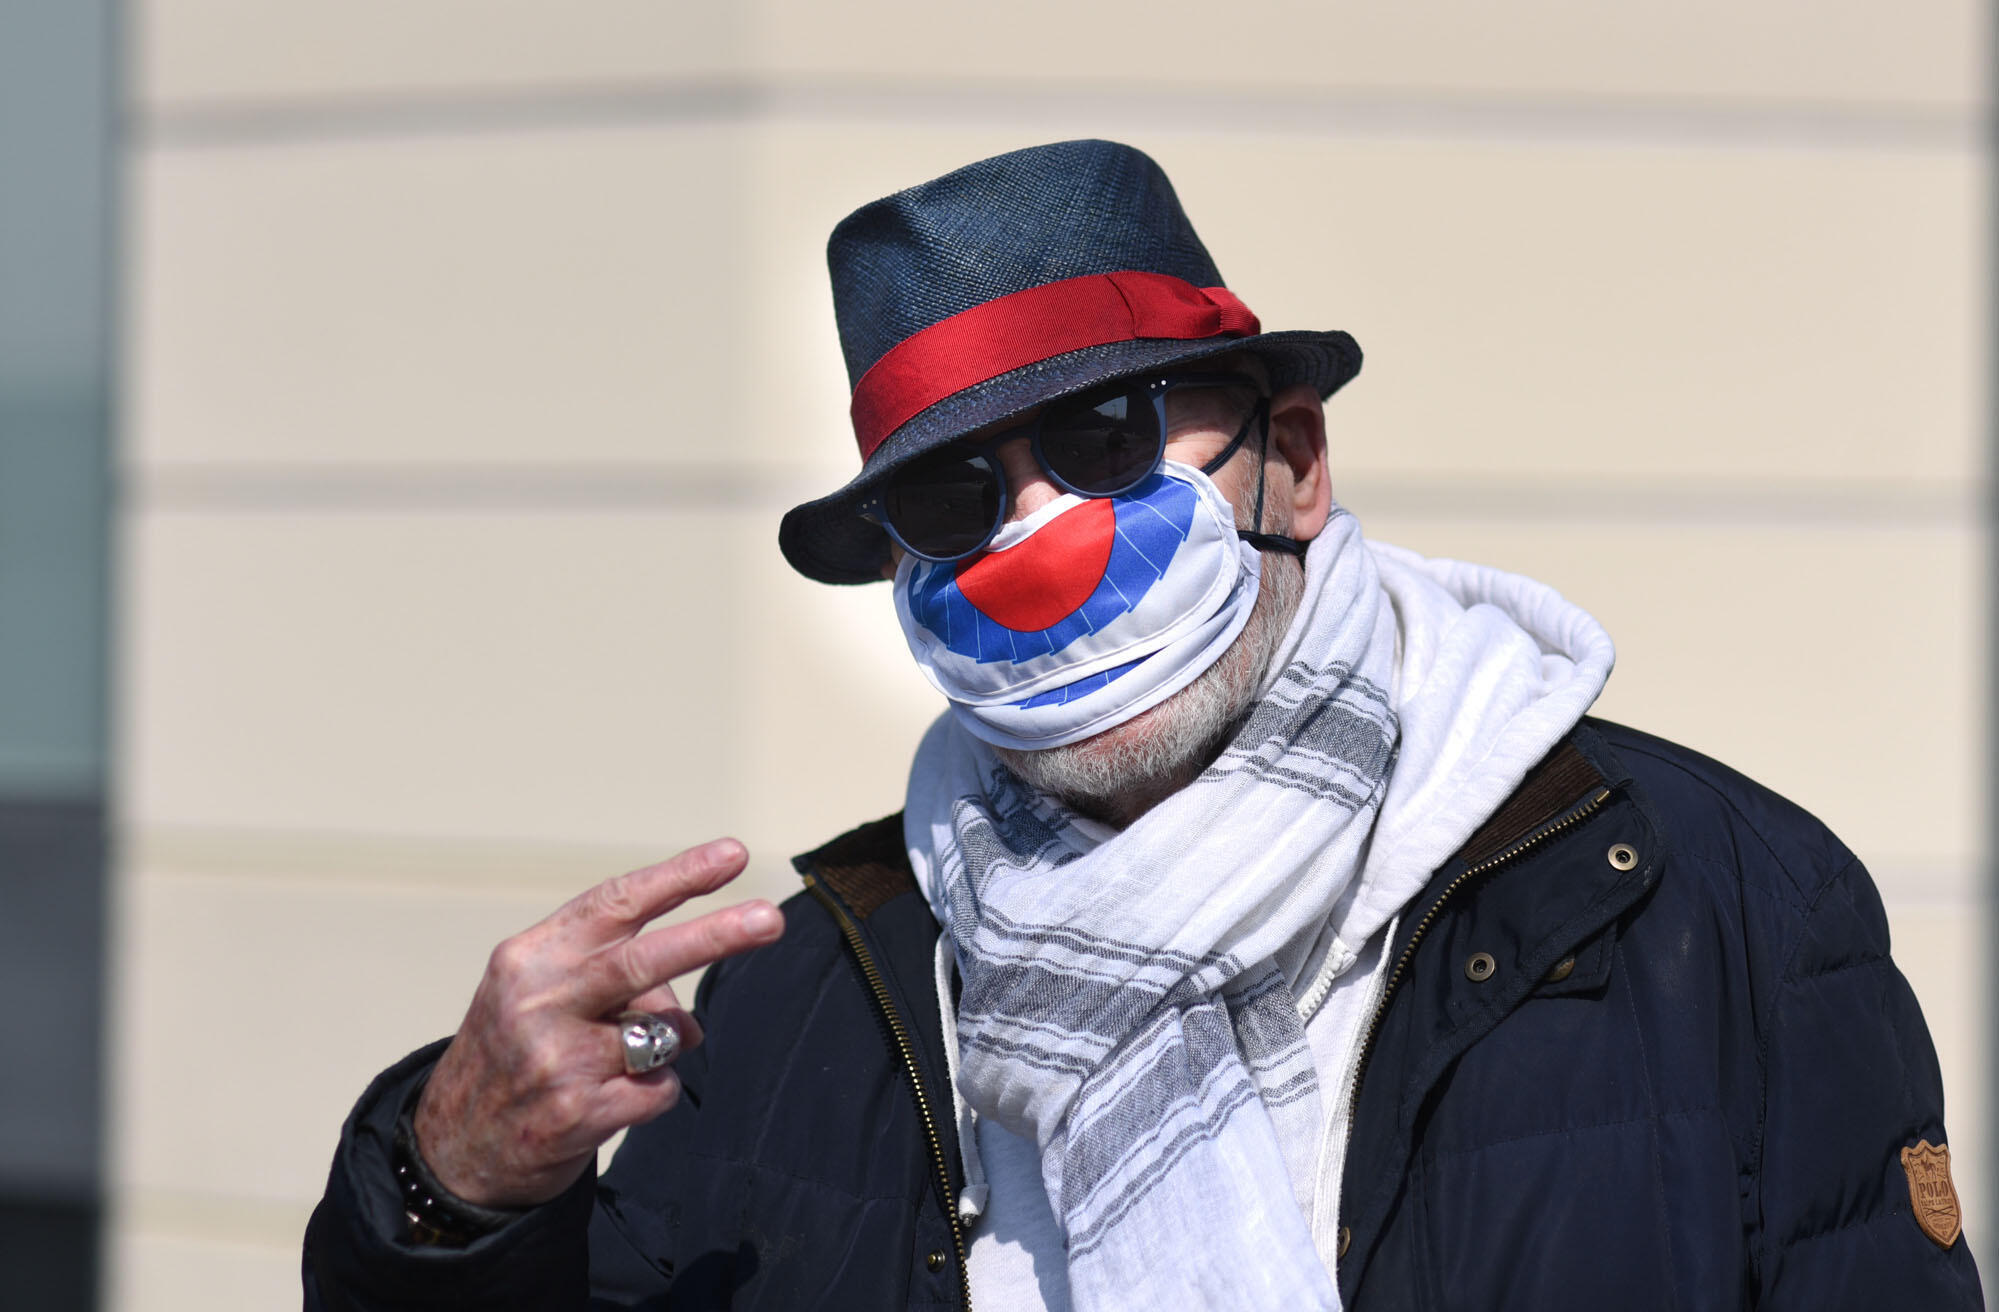 Despite the lockdown, Parisians try to keep their spirits up. This man wears a protective mask that looks like a clown mask.